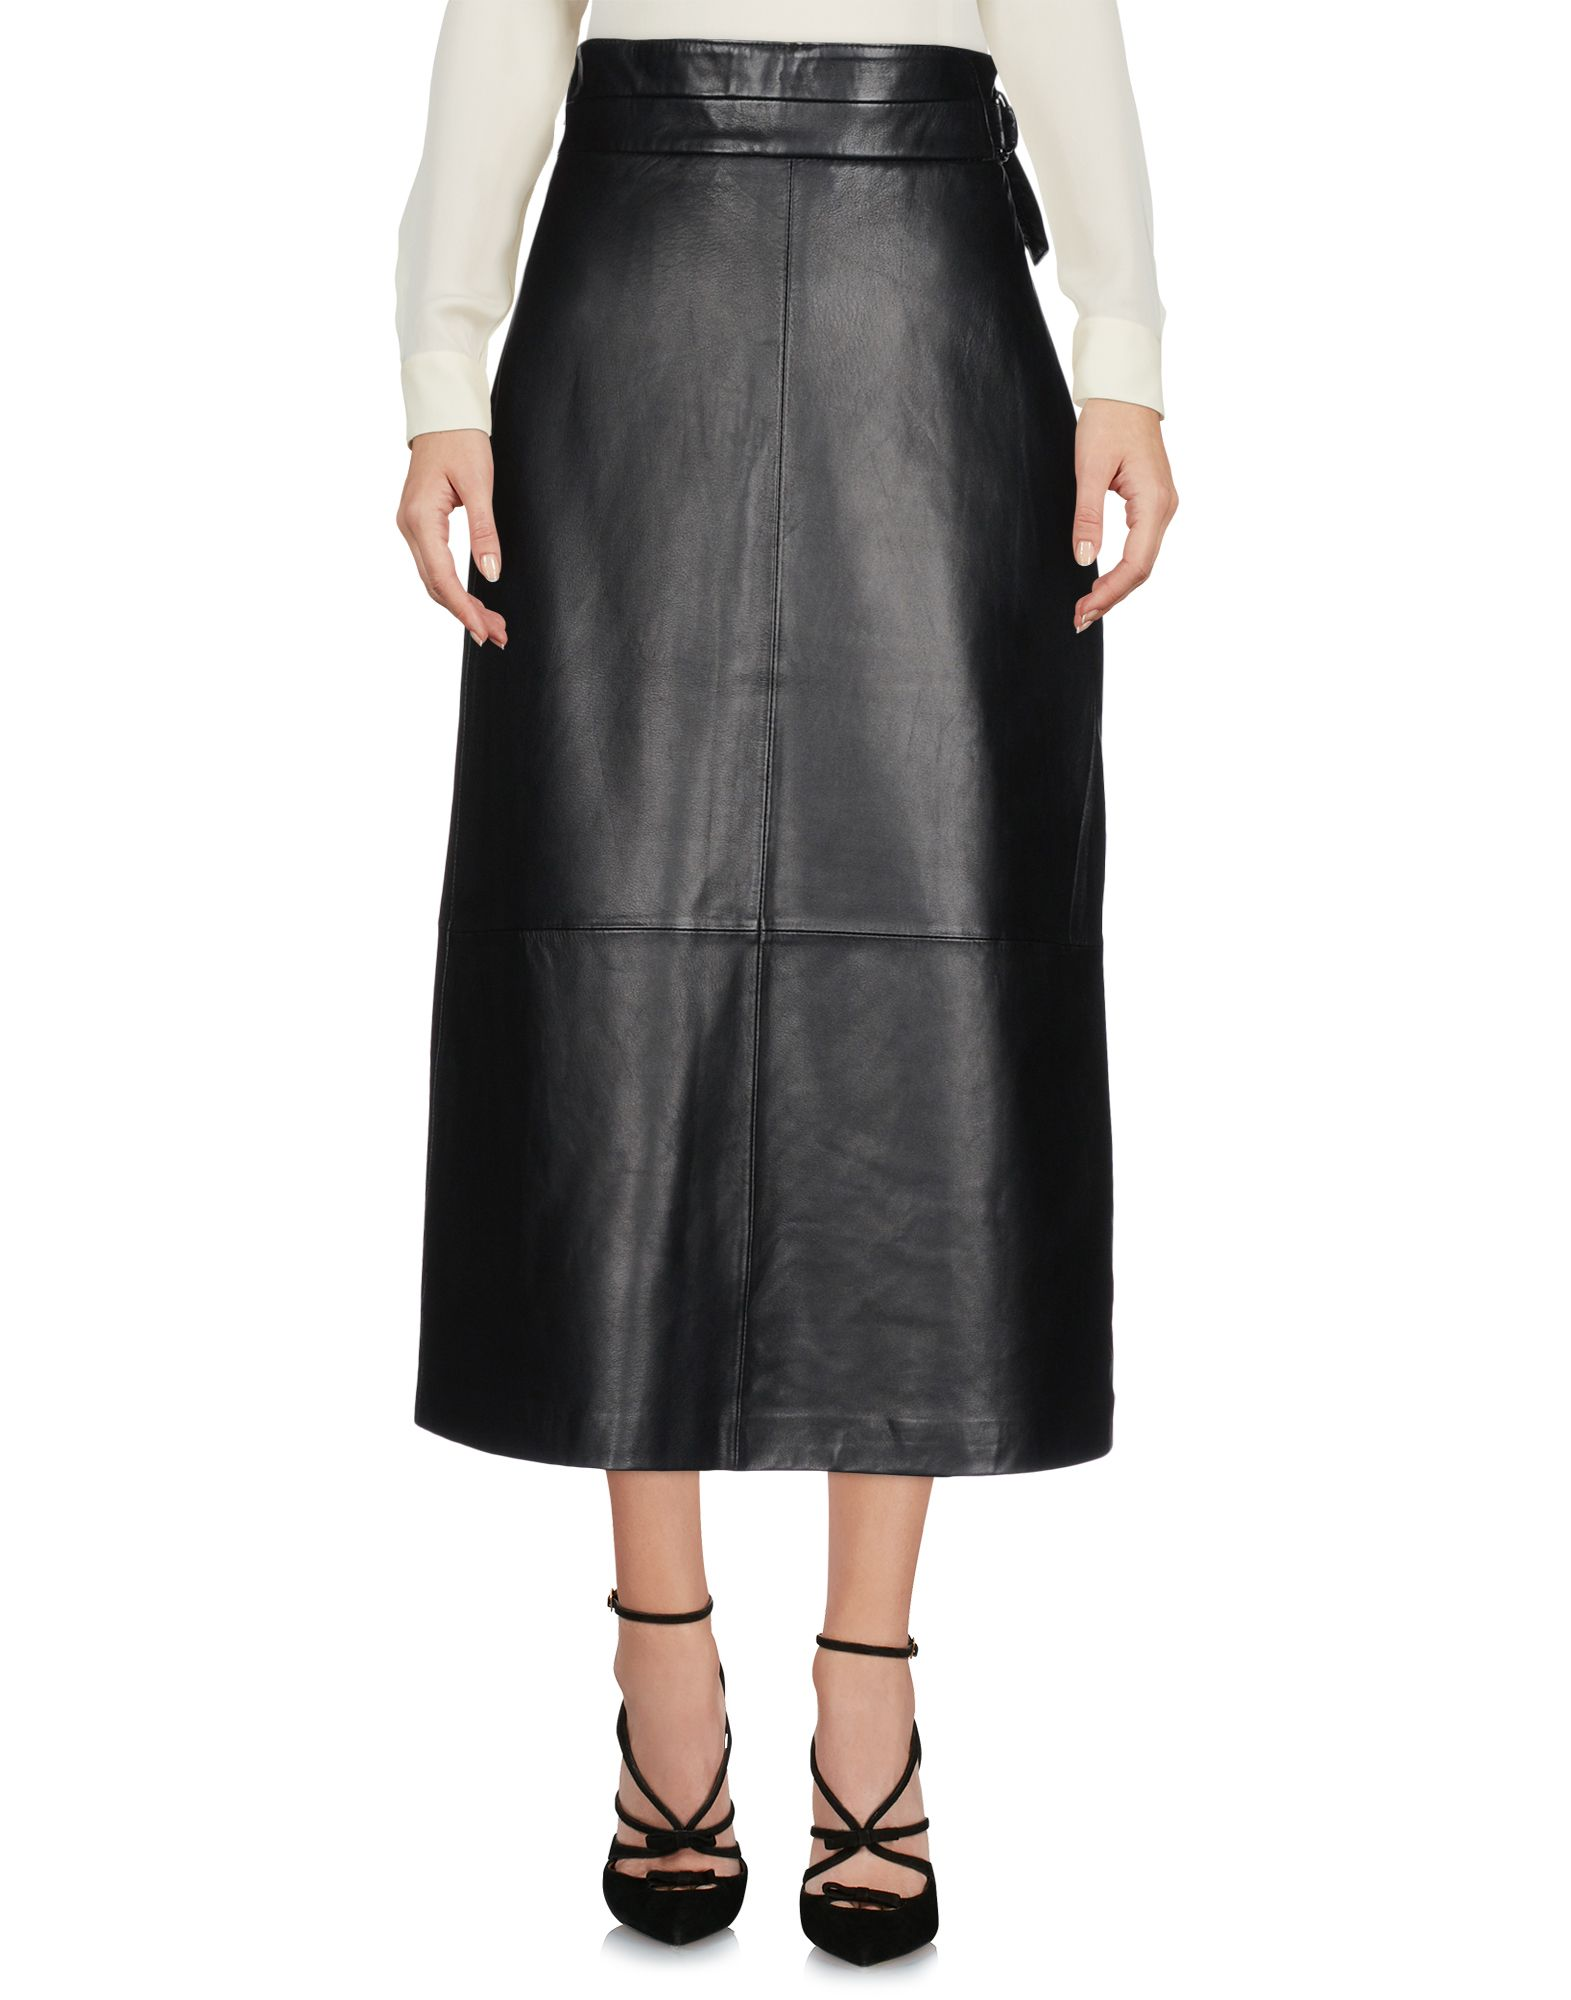 30c3b425756 French Connection 3/4 Length Skirt In Black | ModeSens